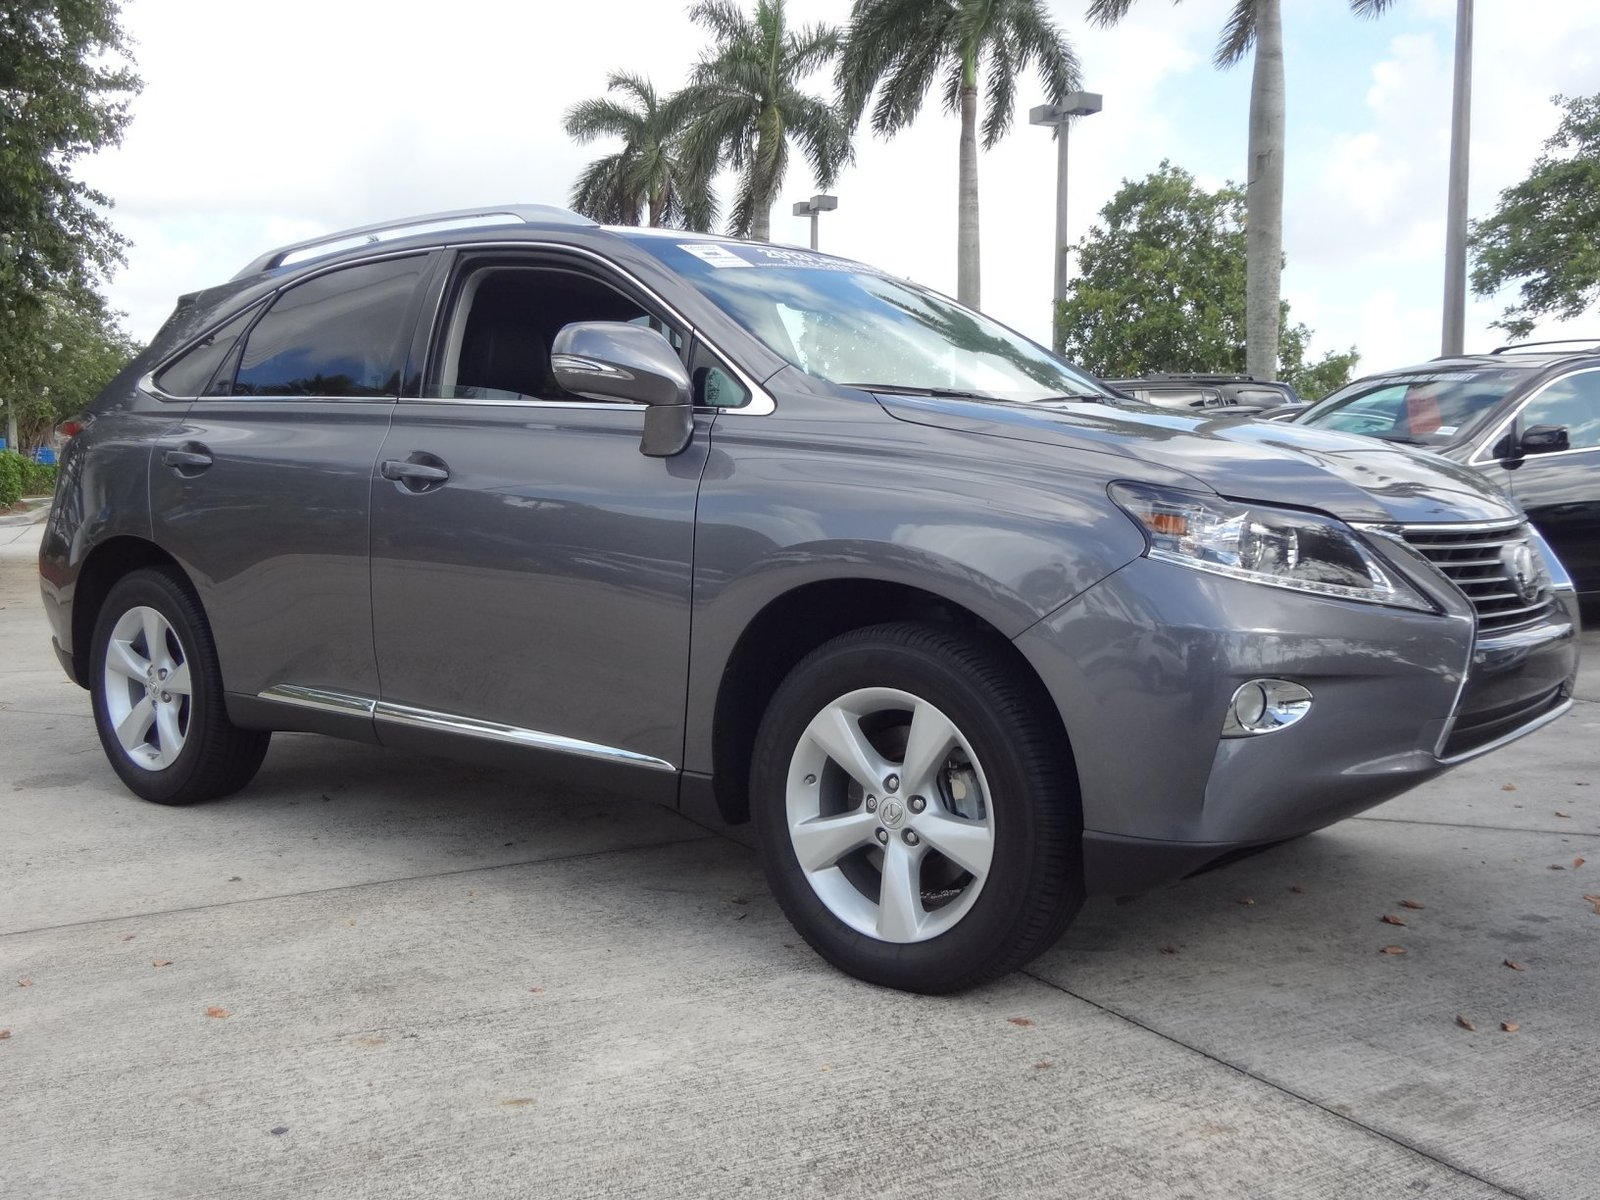 2013 lexus rx 350 summary new cars used cars car reviews html autos weblog. Black Bedroom Furniture Sets. Home Design Ideas